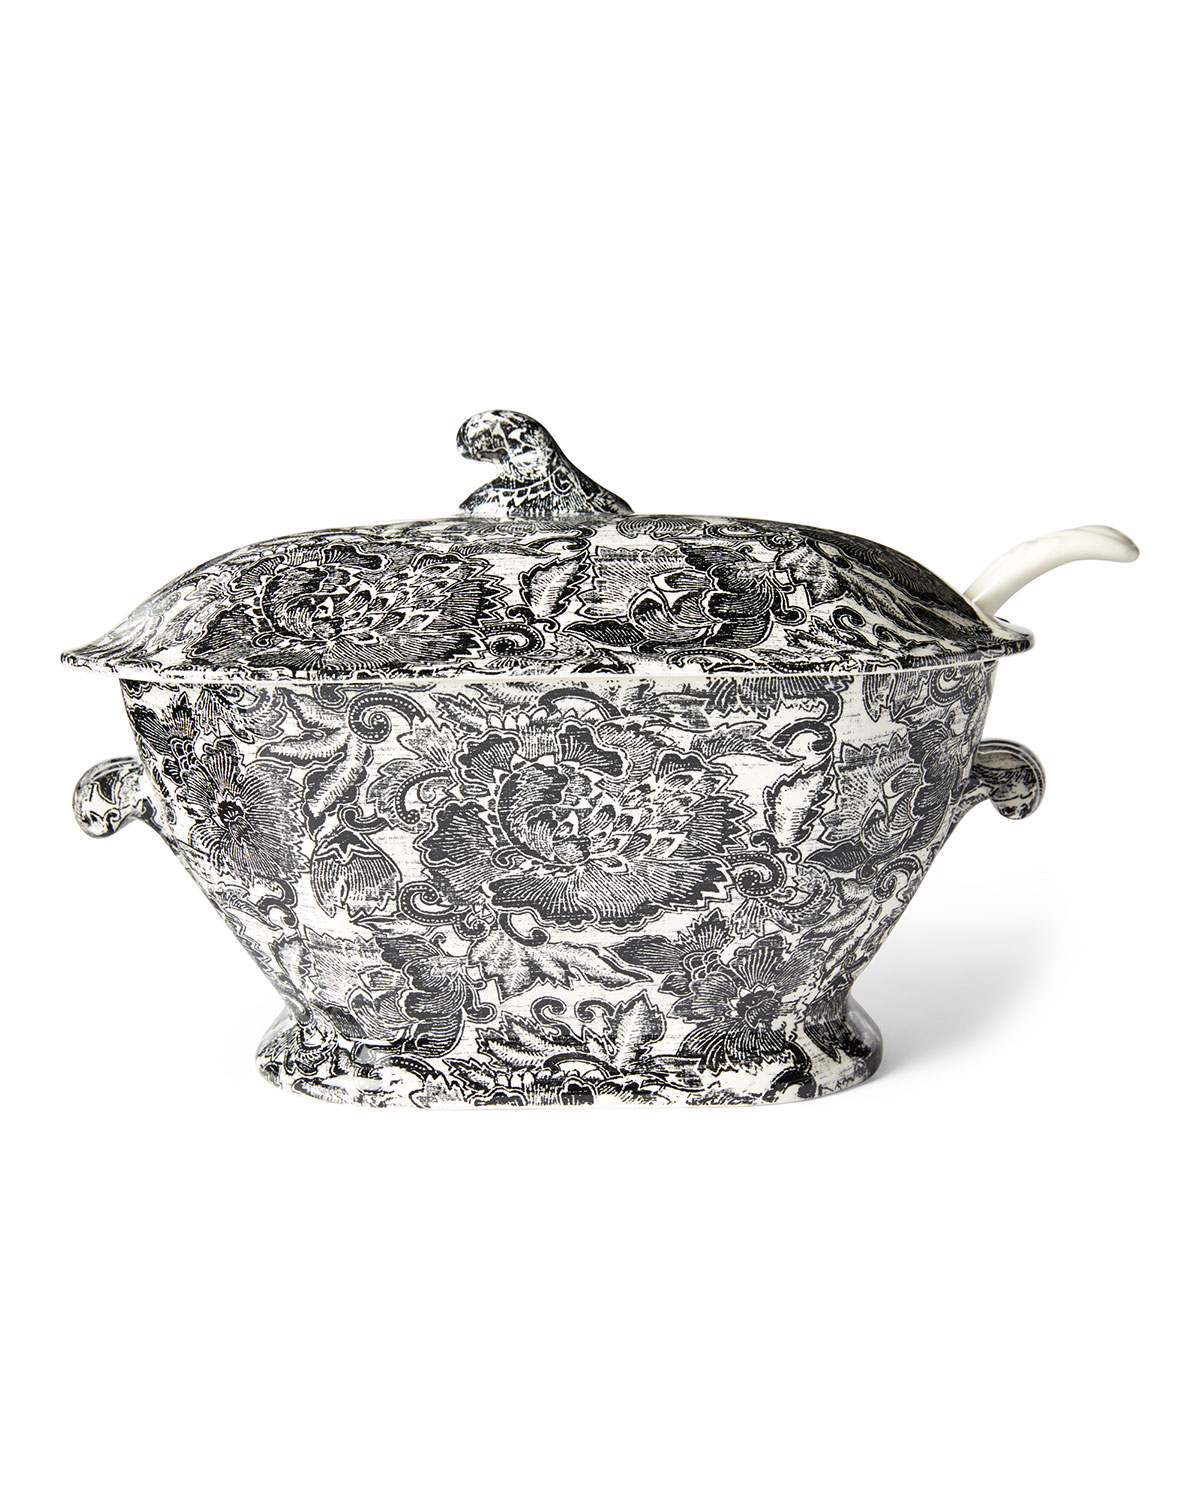 Ralph Lauren Home FADED PEONY SOUP TUREEN